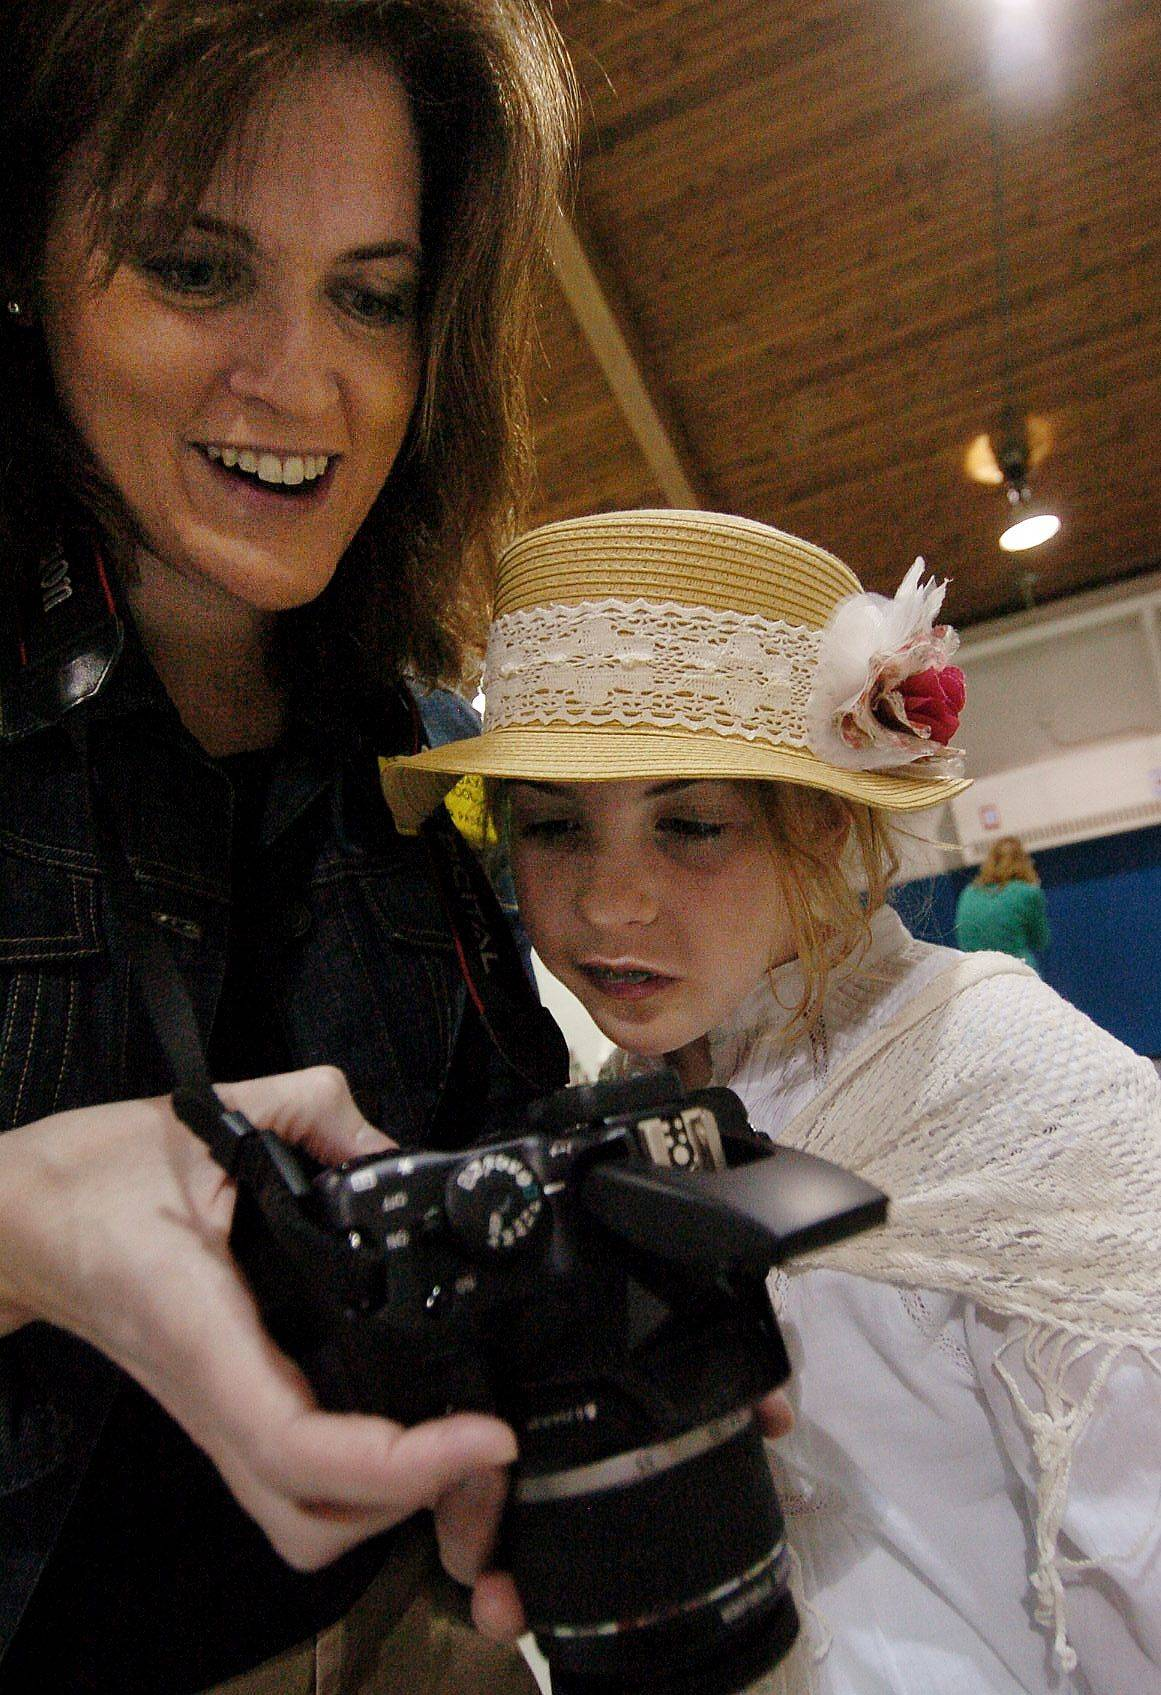 Volunteer mom Carrie Greene shows her daughter Ruby, dressed in Victorian style, pictures she has taken during The Chicago Fair, a social science simulation put on by third grade students at Half Day School in Lincolnshire.